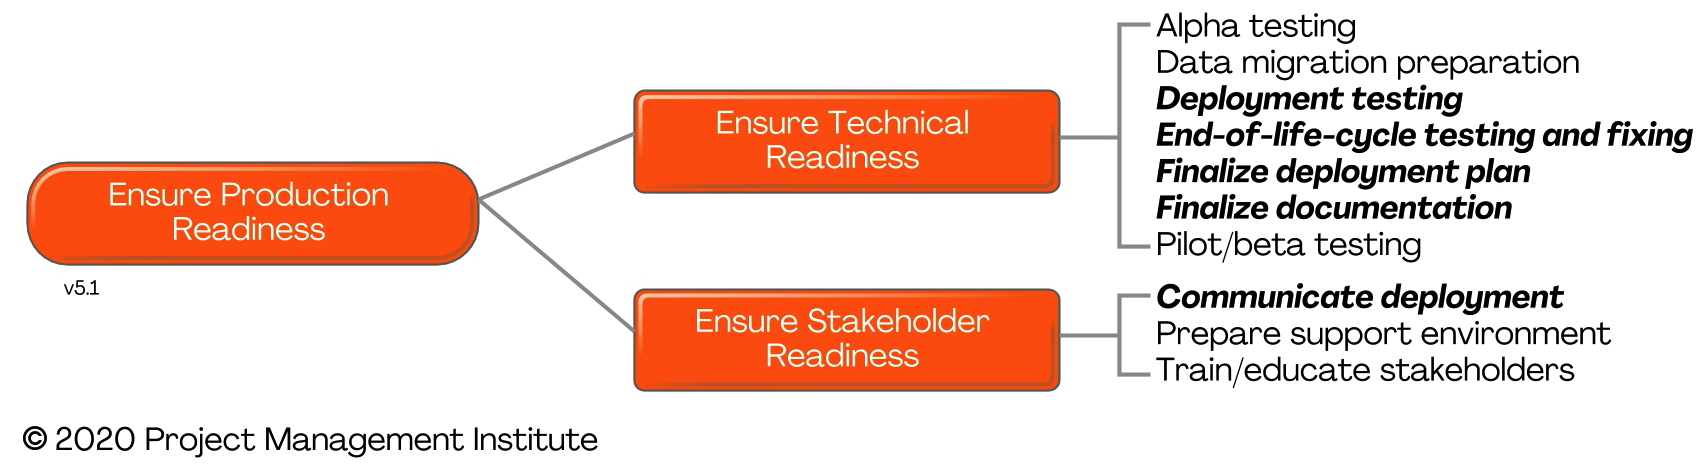 Goal - Transition - Ensure Production Readiness